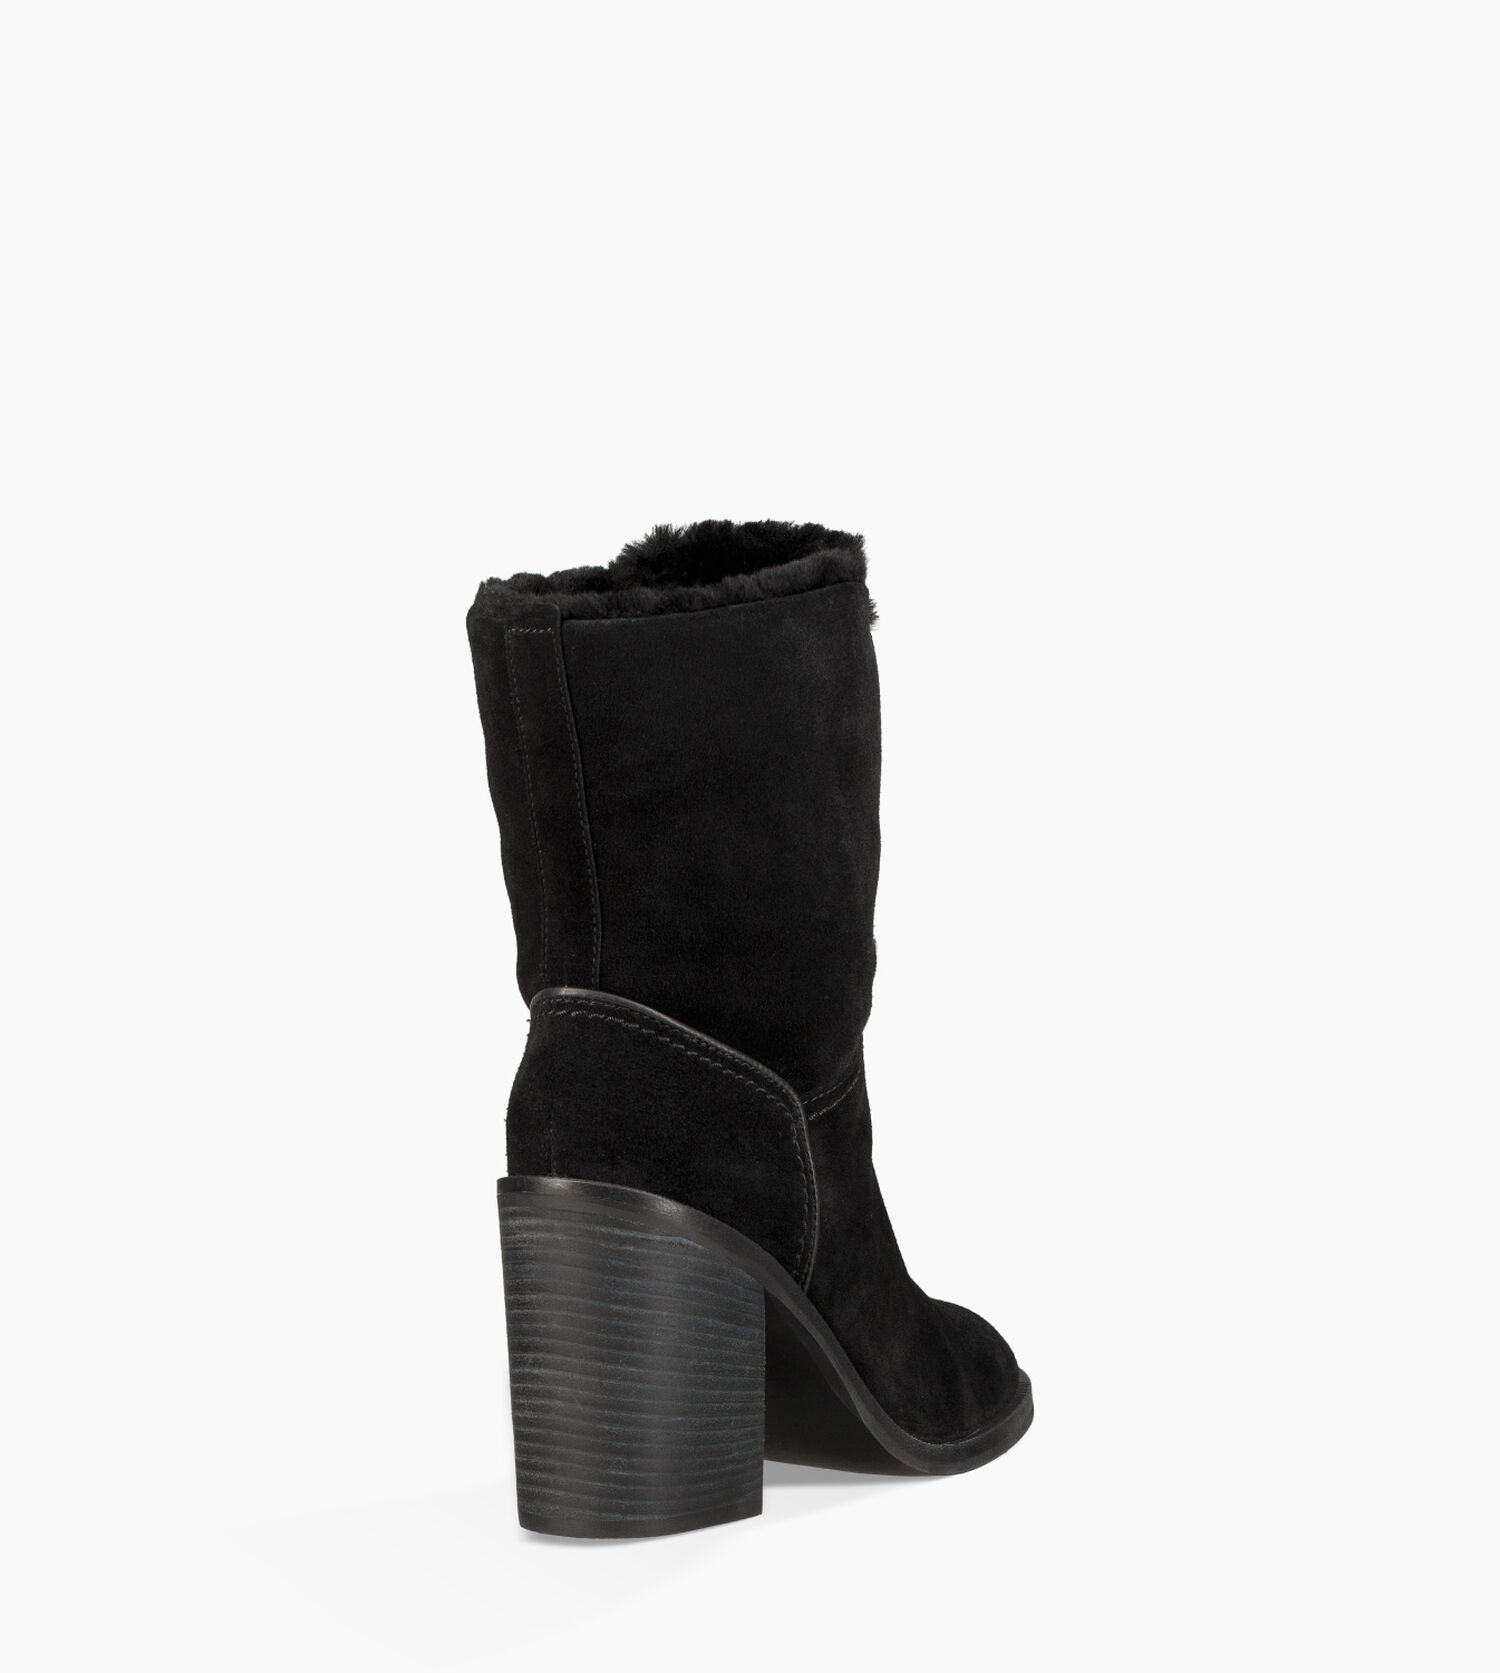 93a435a64e0 Women's Share this product Jerene Boot